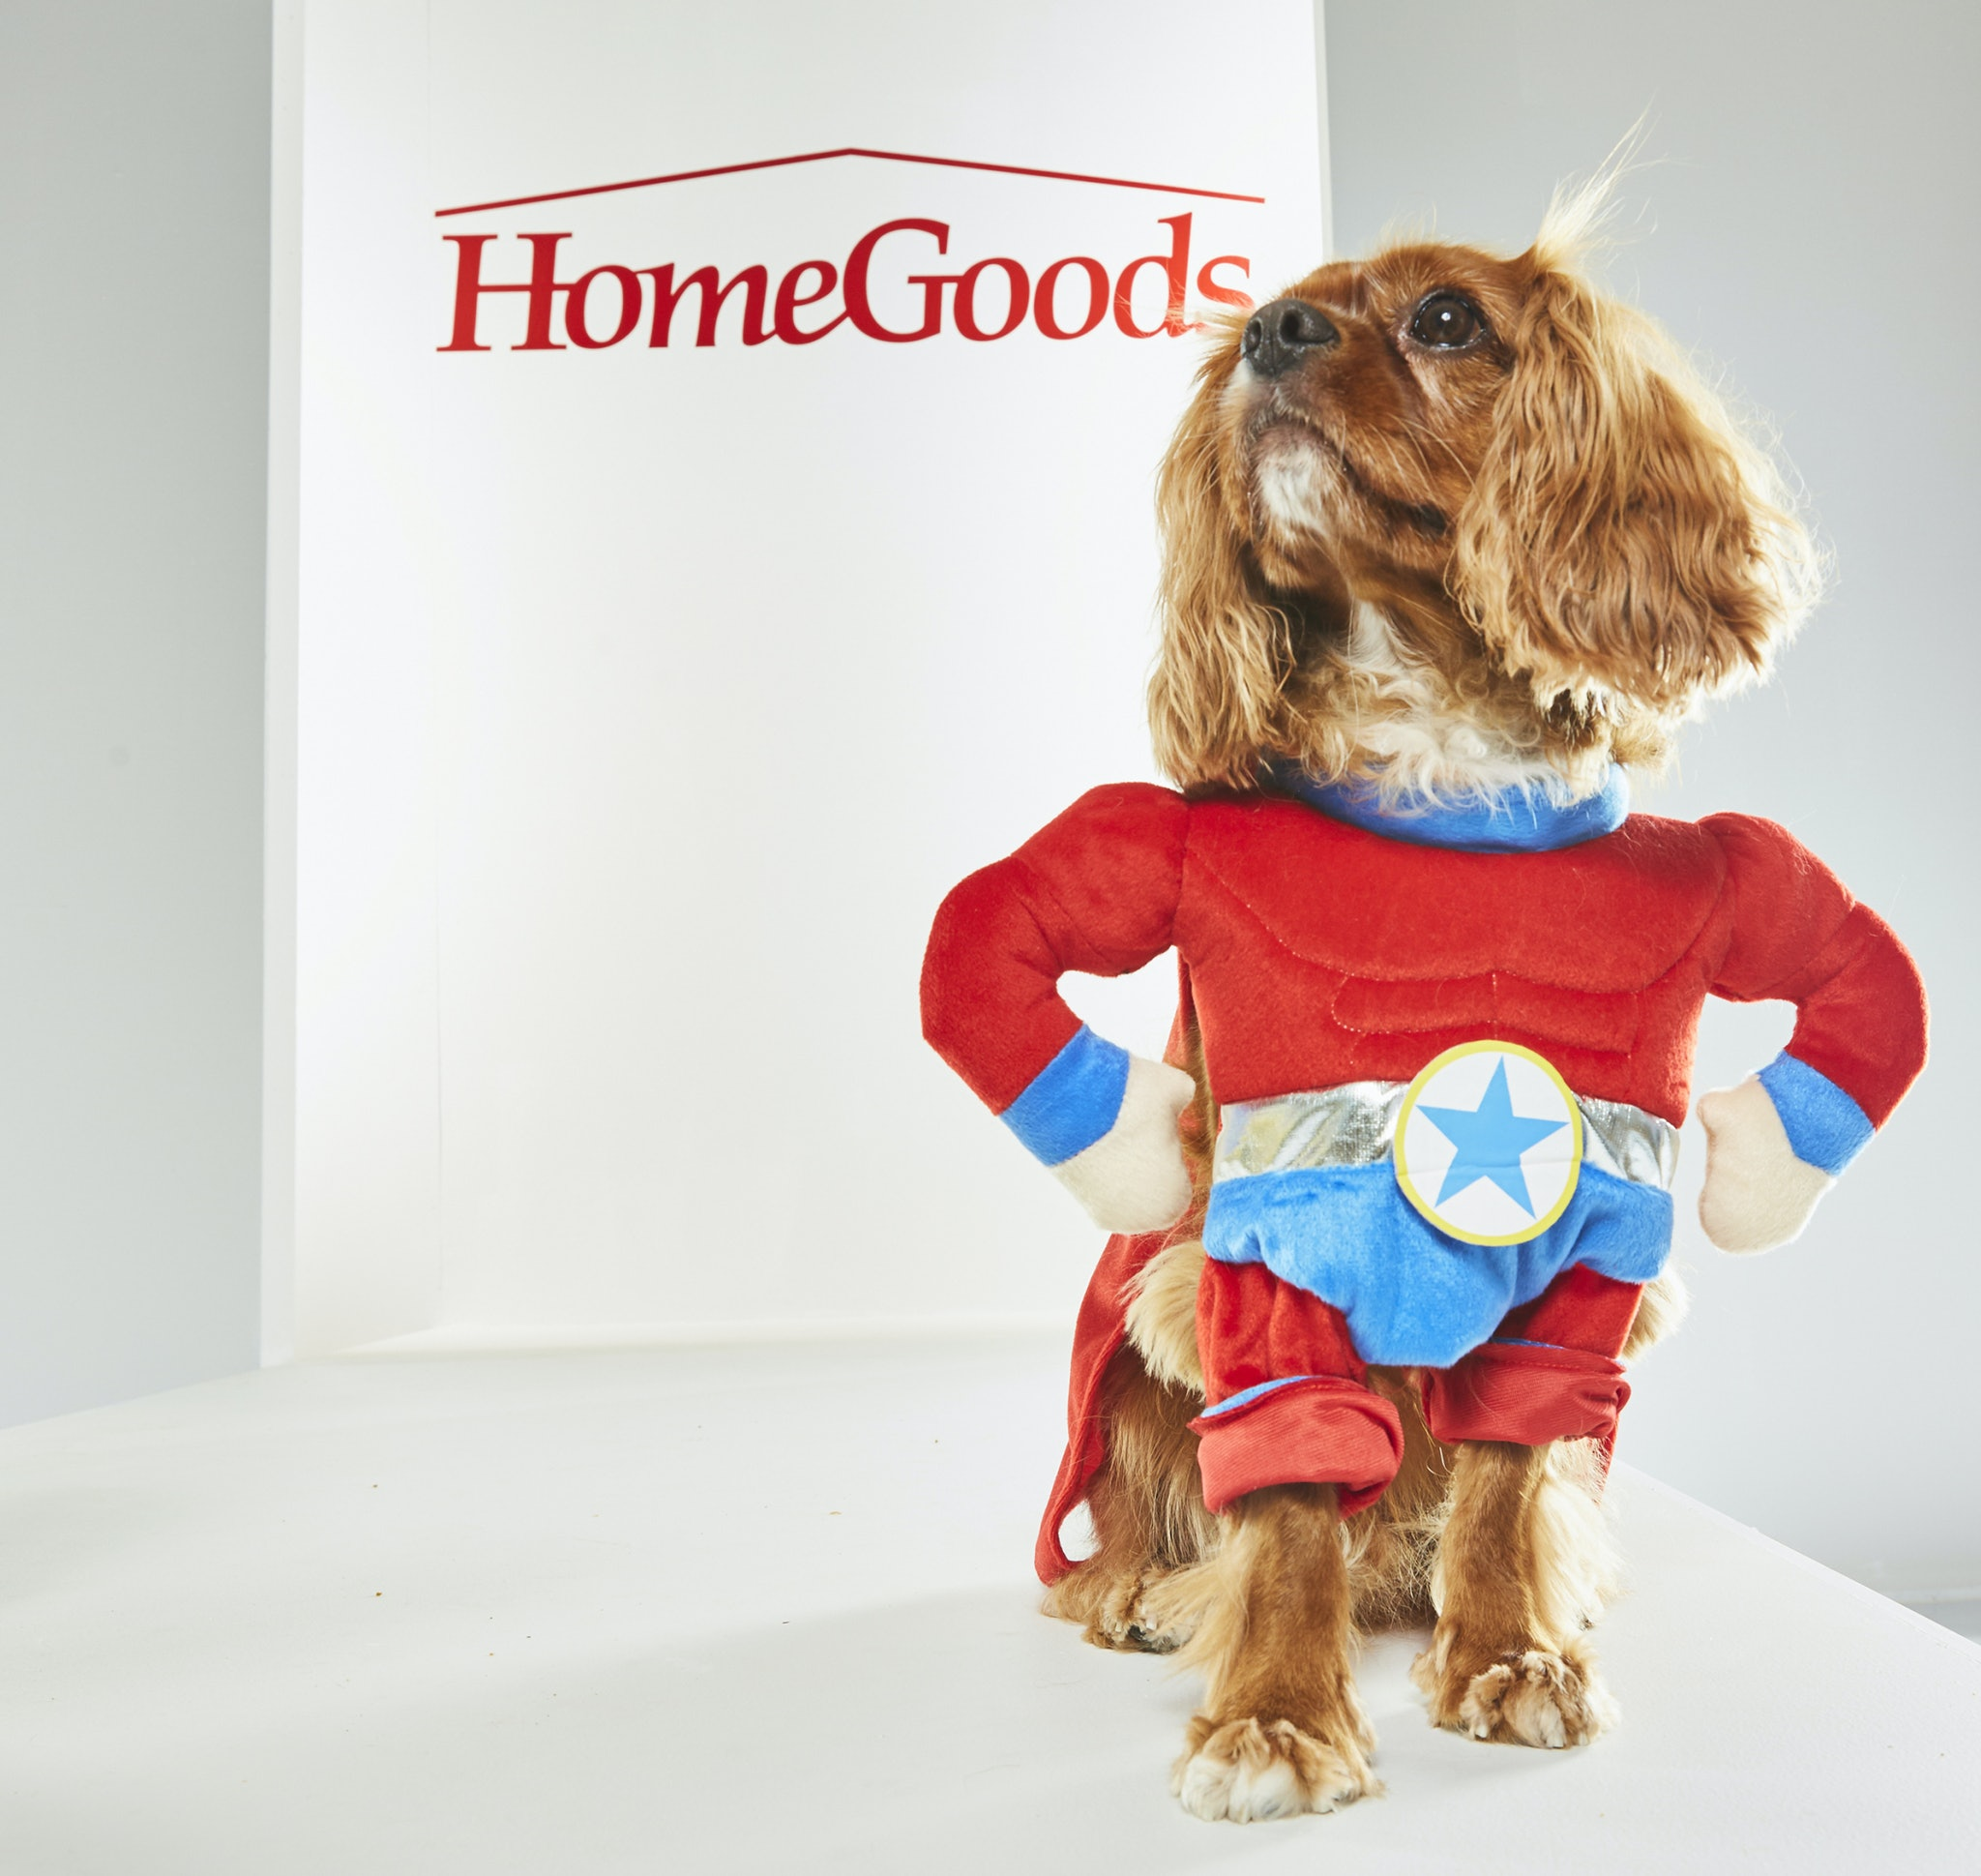 10 halloween costume ideas for kids & their pets that you'll be